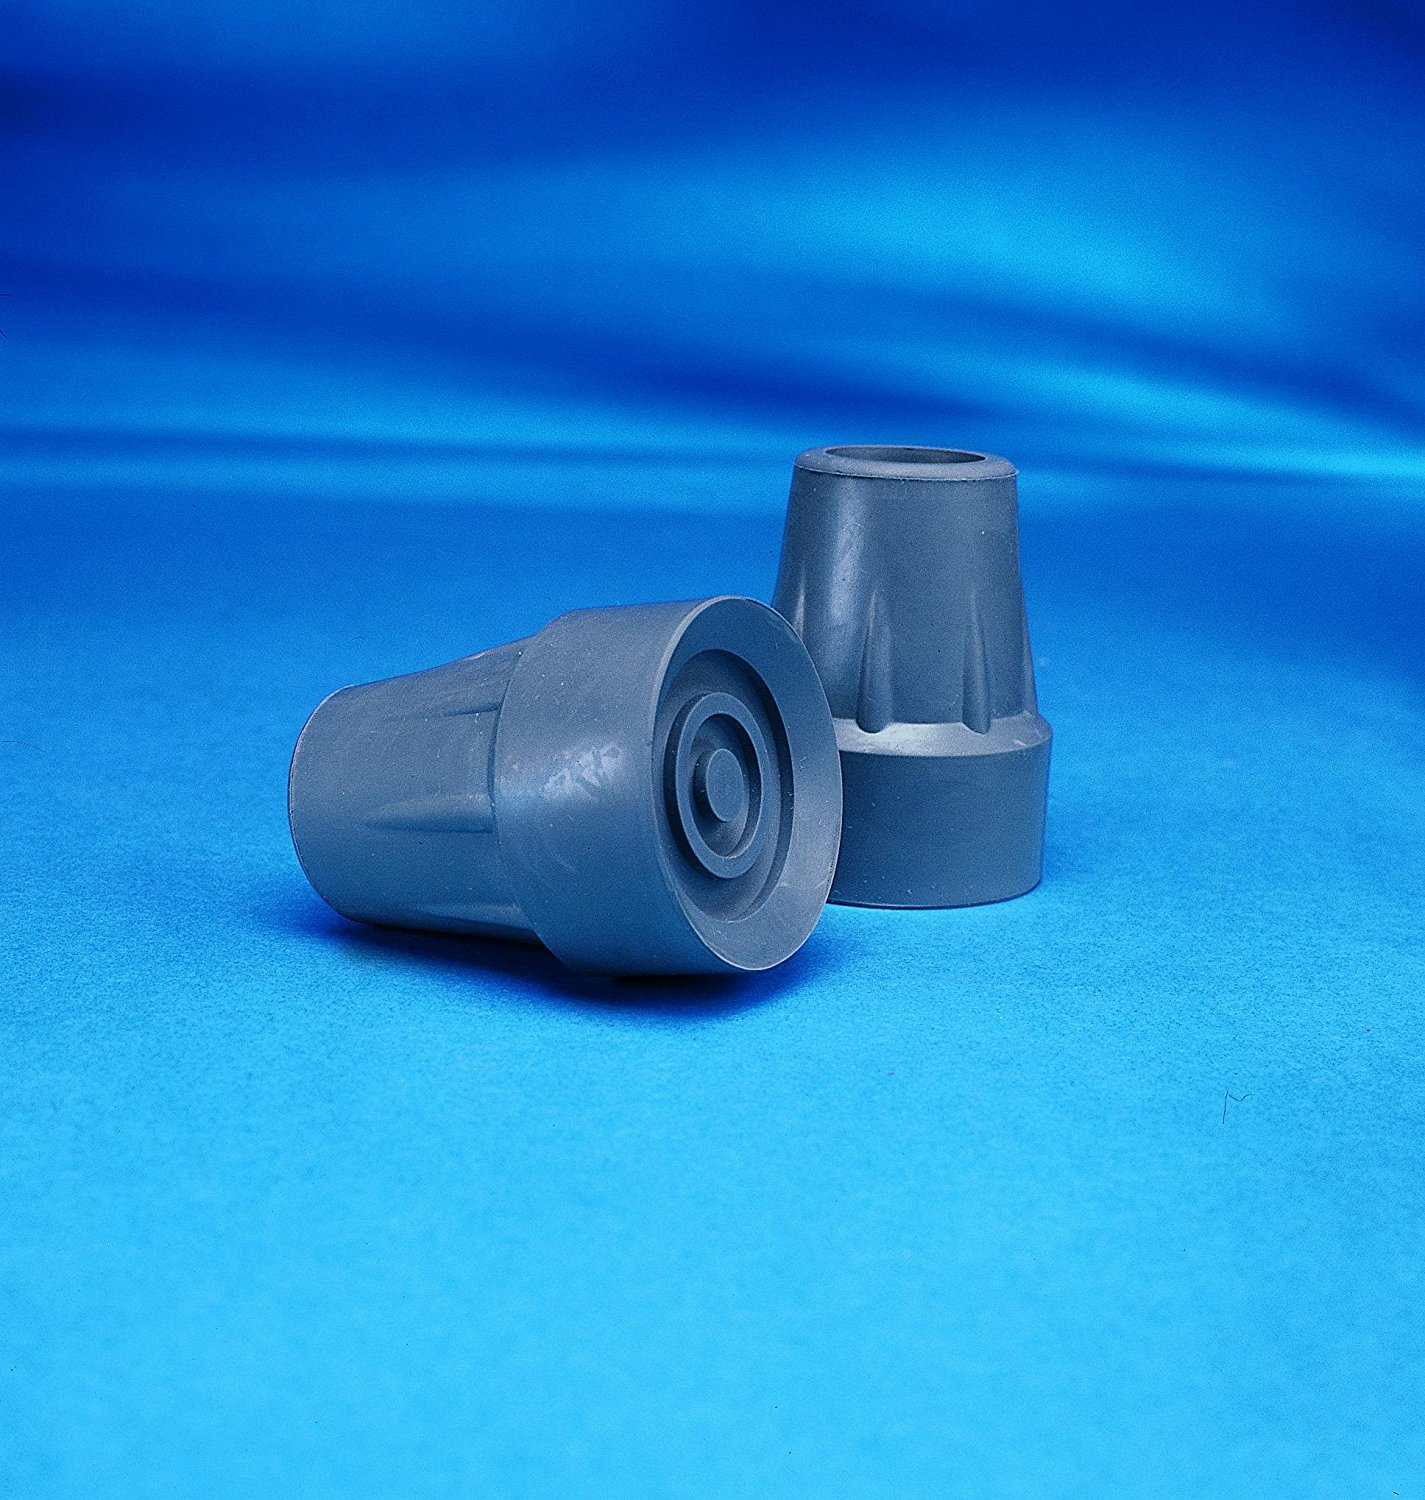 INV6134 - Rubber Crutch Tip, Large 1-3/4, Gray, Manufacturer: Invacare Corporation By Invacare Ship from US